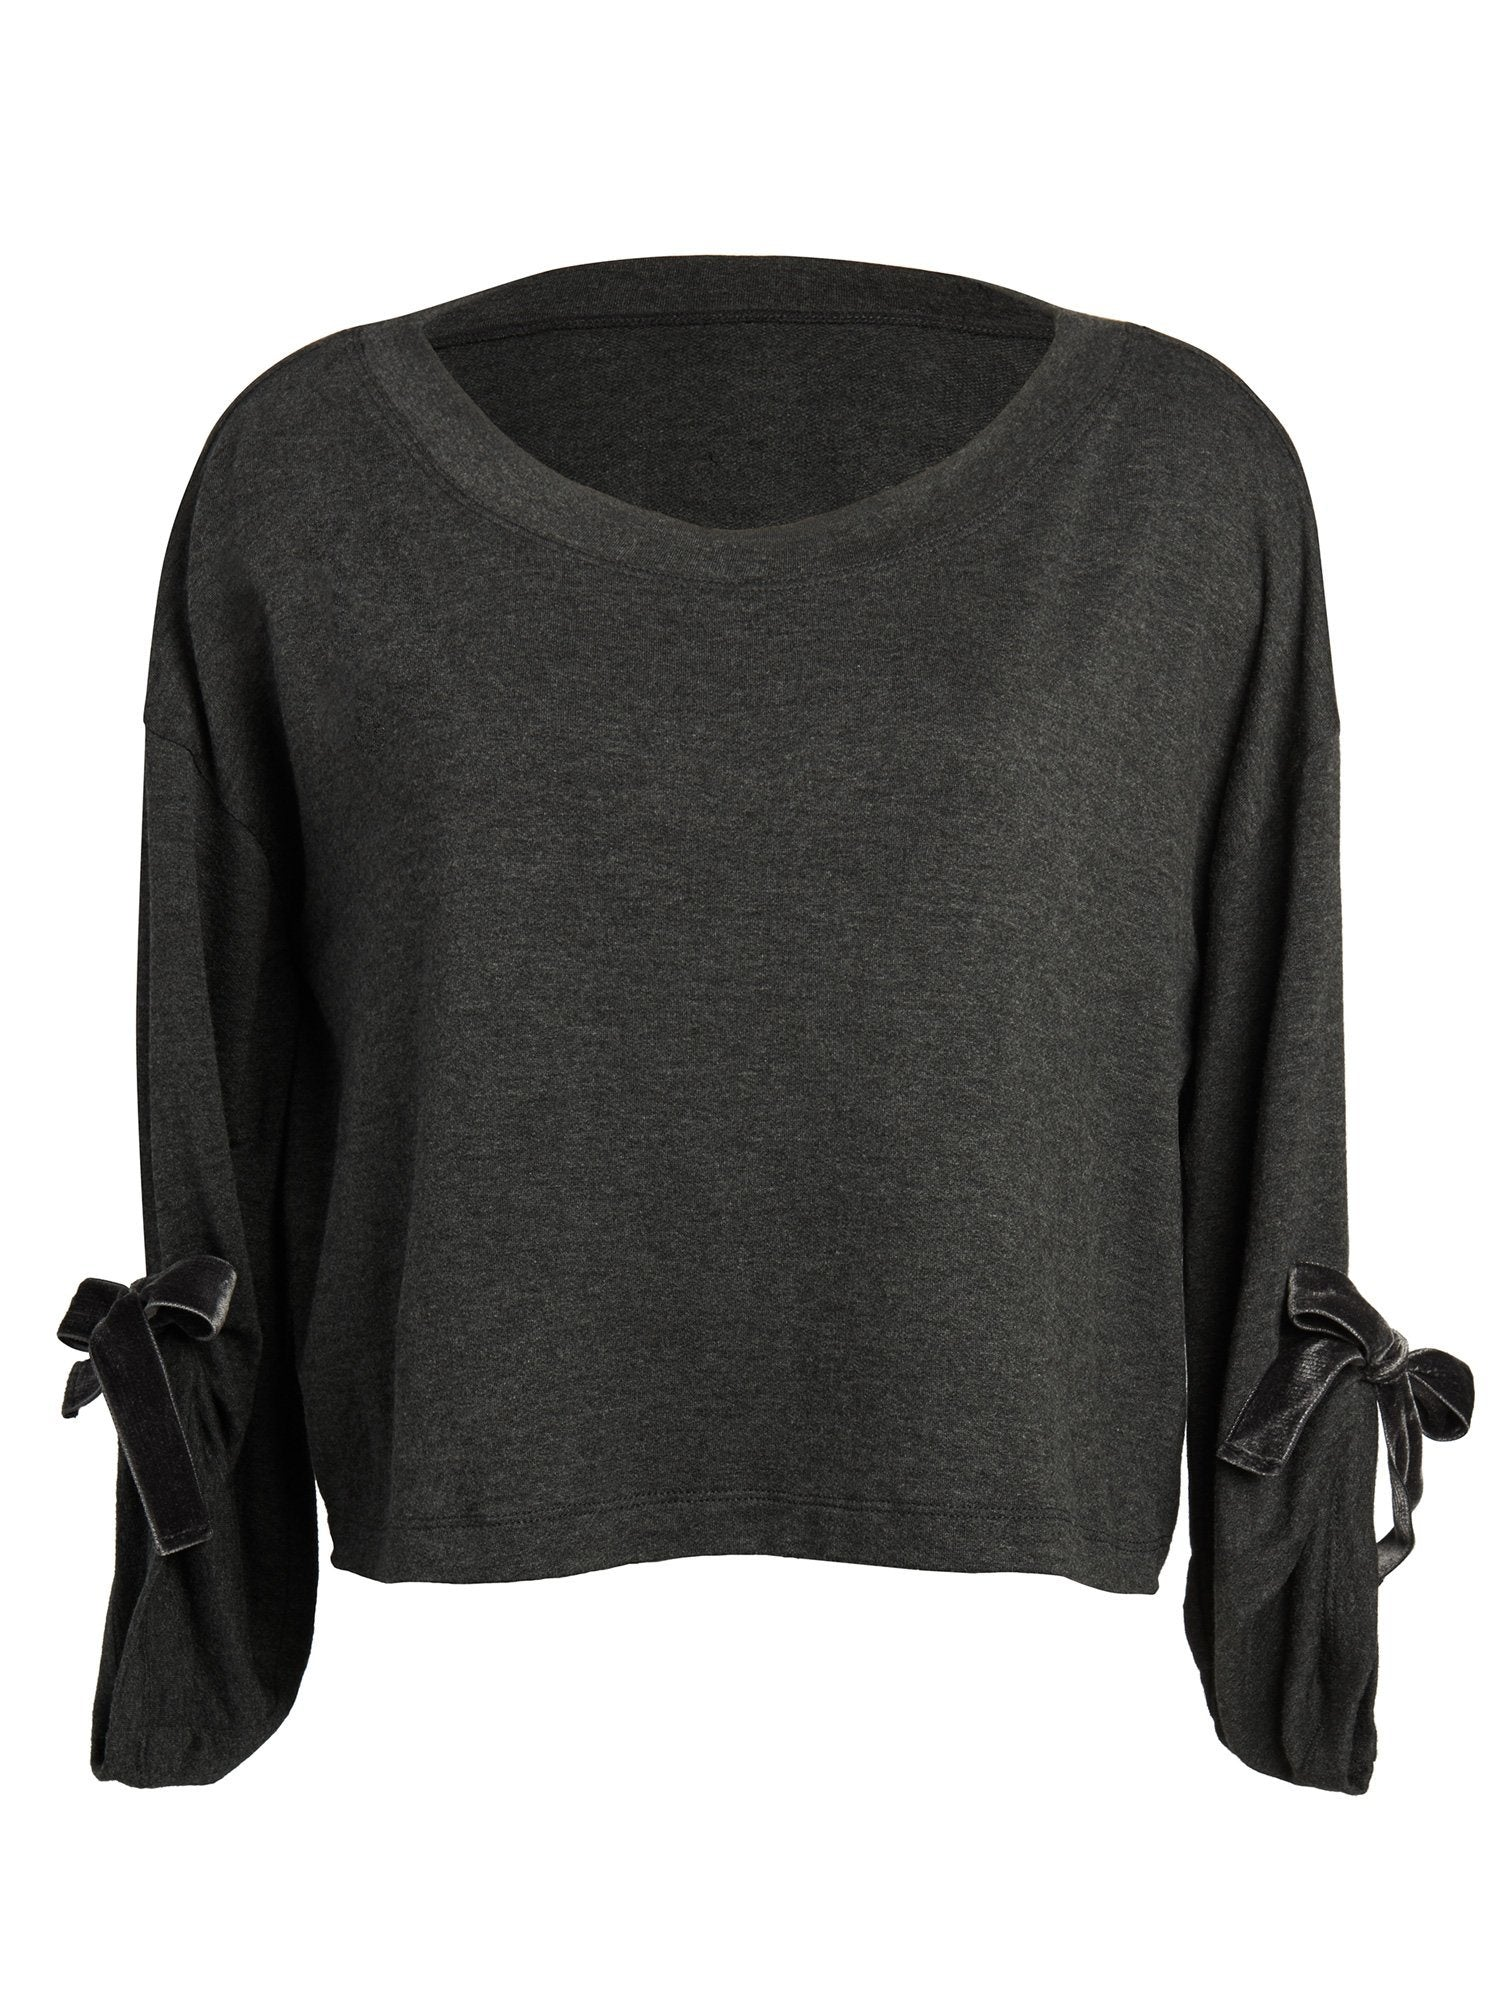 Ava Tie Sleeve Top Tops by Le Marché by NP